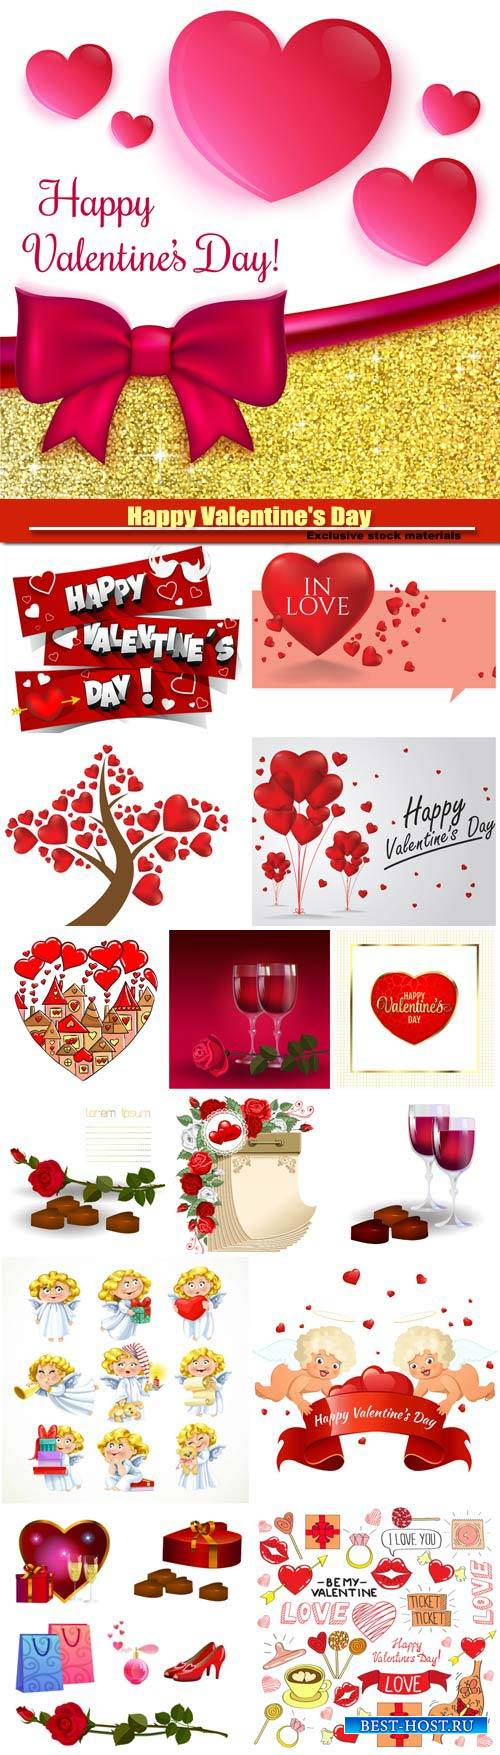 Happy Valentine's Day vector, hearts, romance, love #11